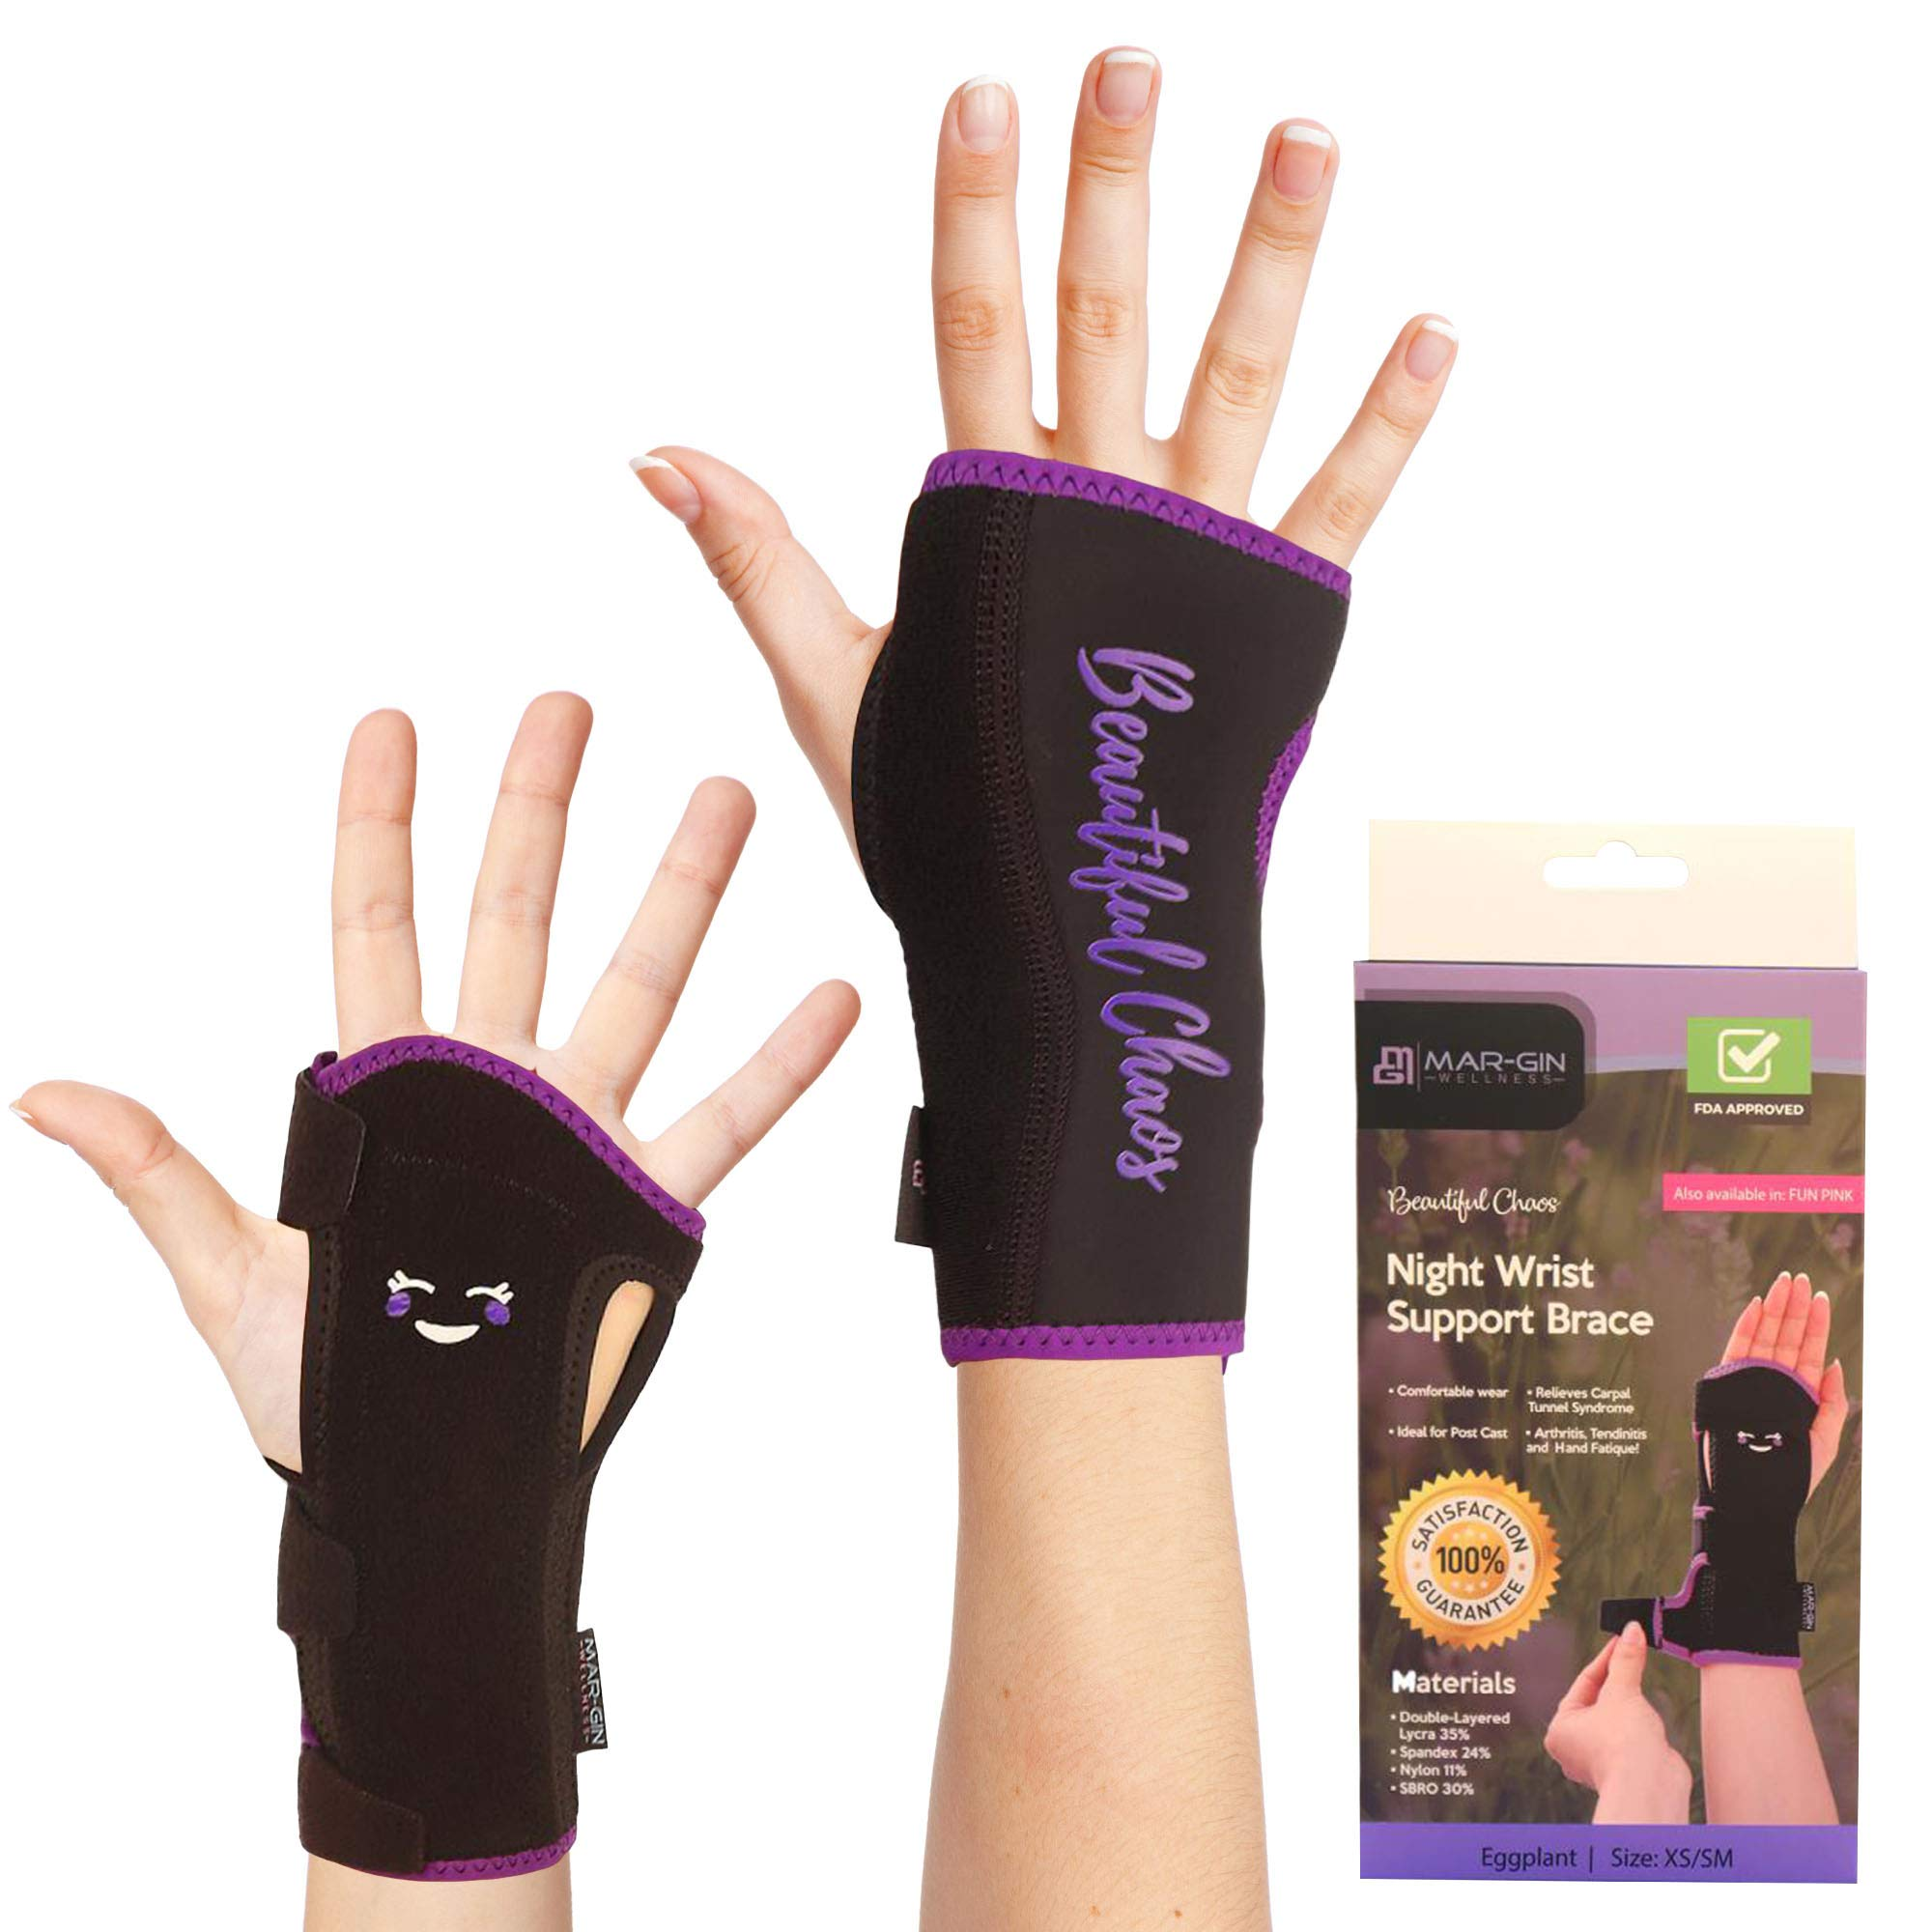 Wrist Brace Carpal Tunnel - Carpal Tunnel Brace Relieves Tendonitis, Wrist Brace Right Hand Left Hand Light Weight Adjustable Breathable Fits Left or Right Hand Daytime & Nightime